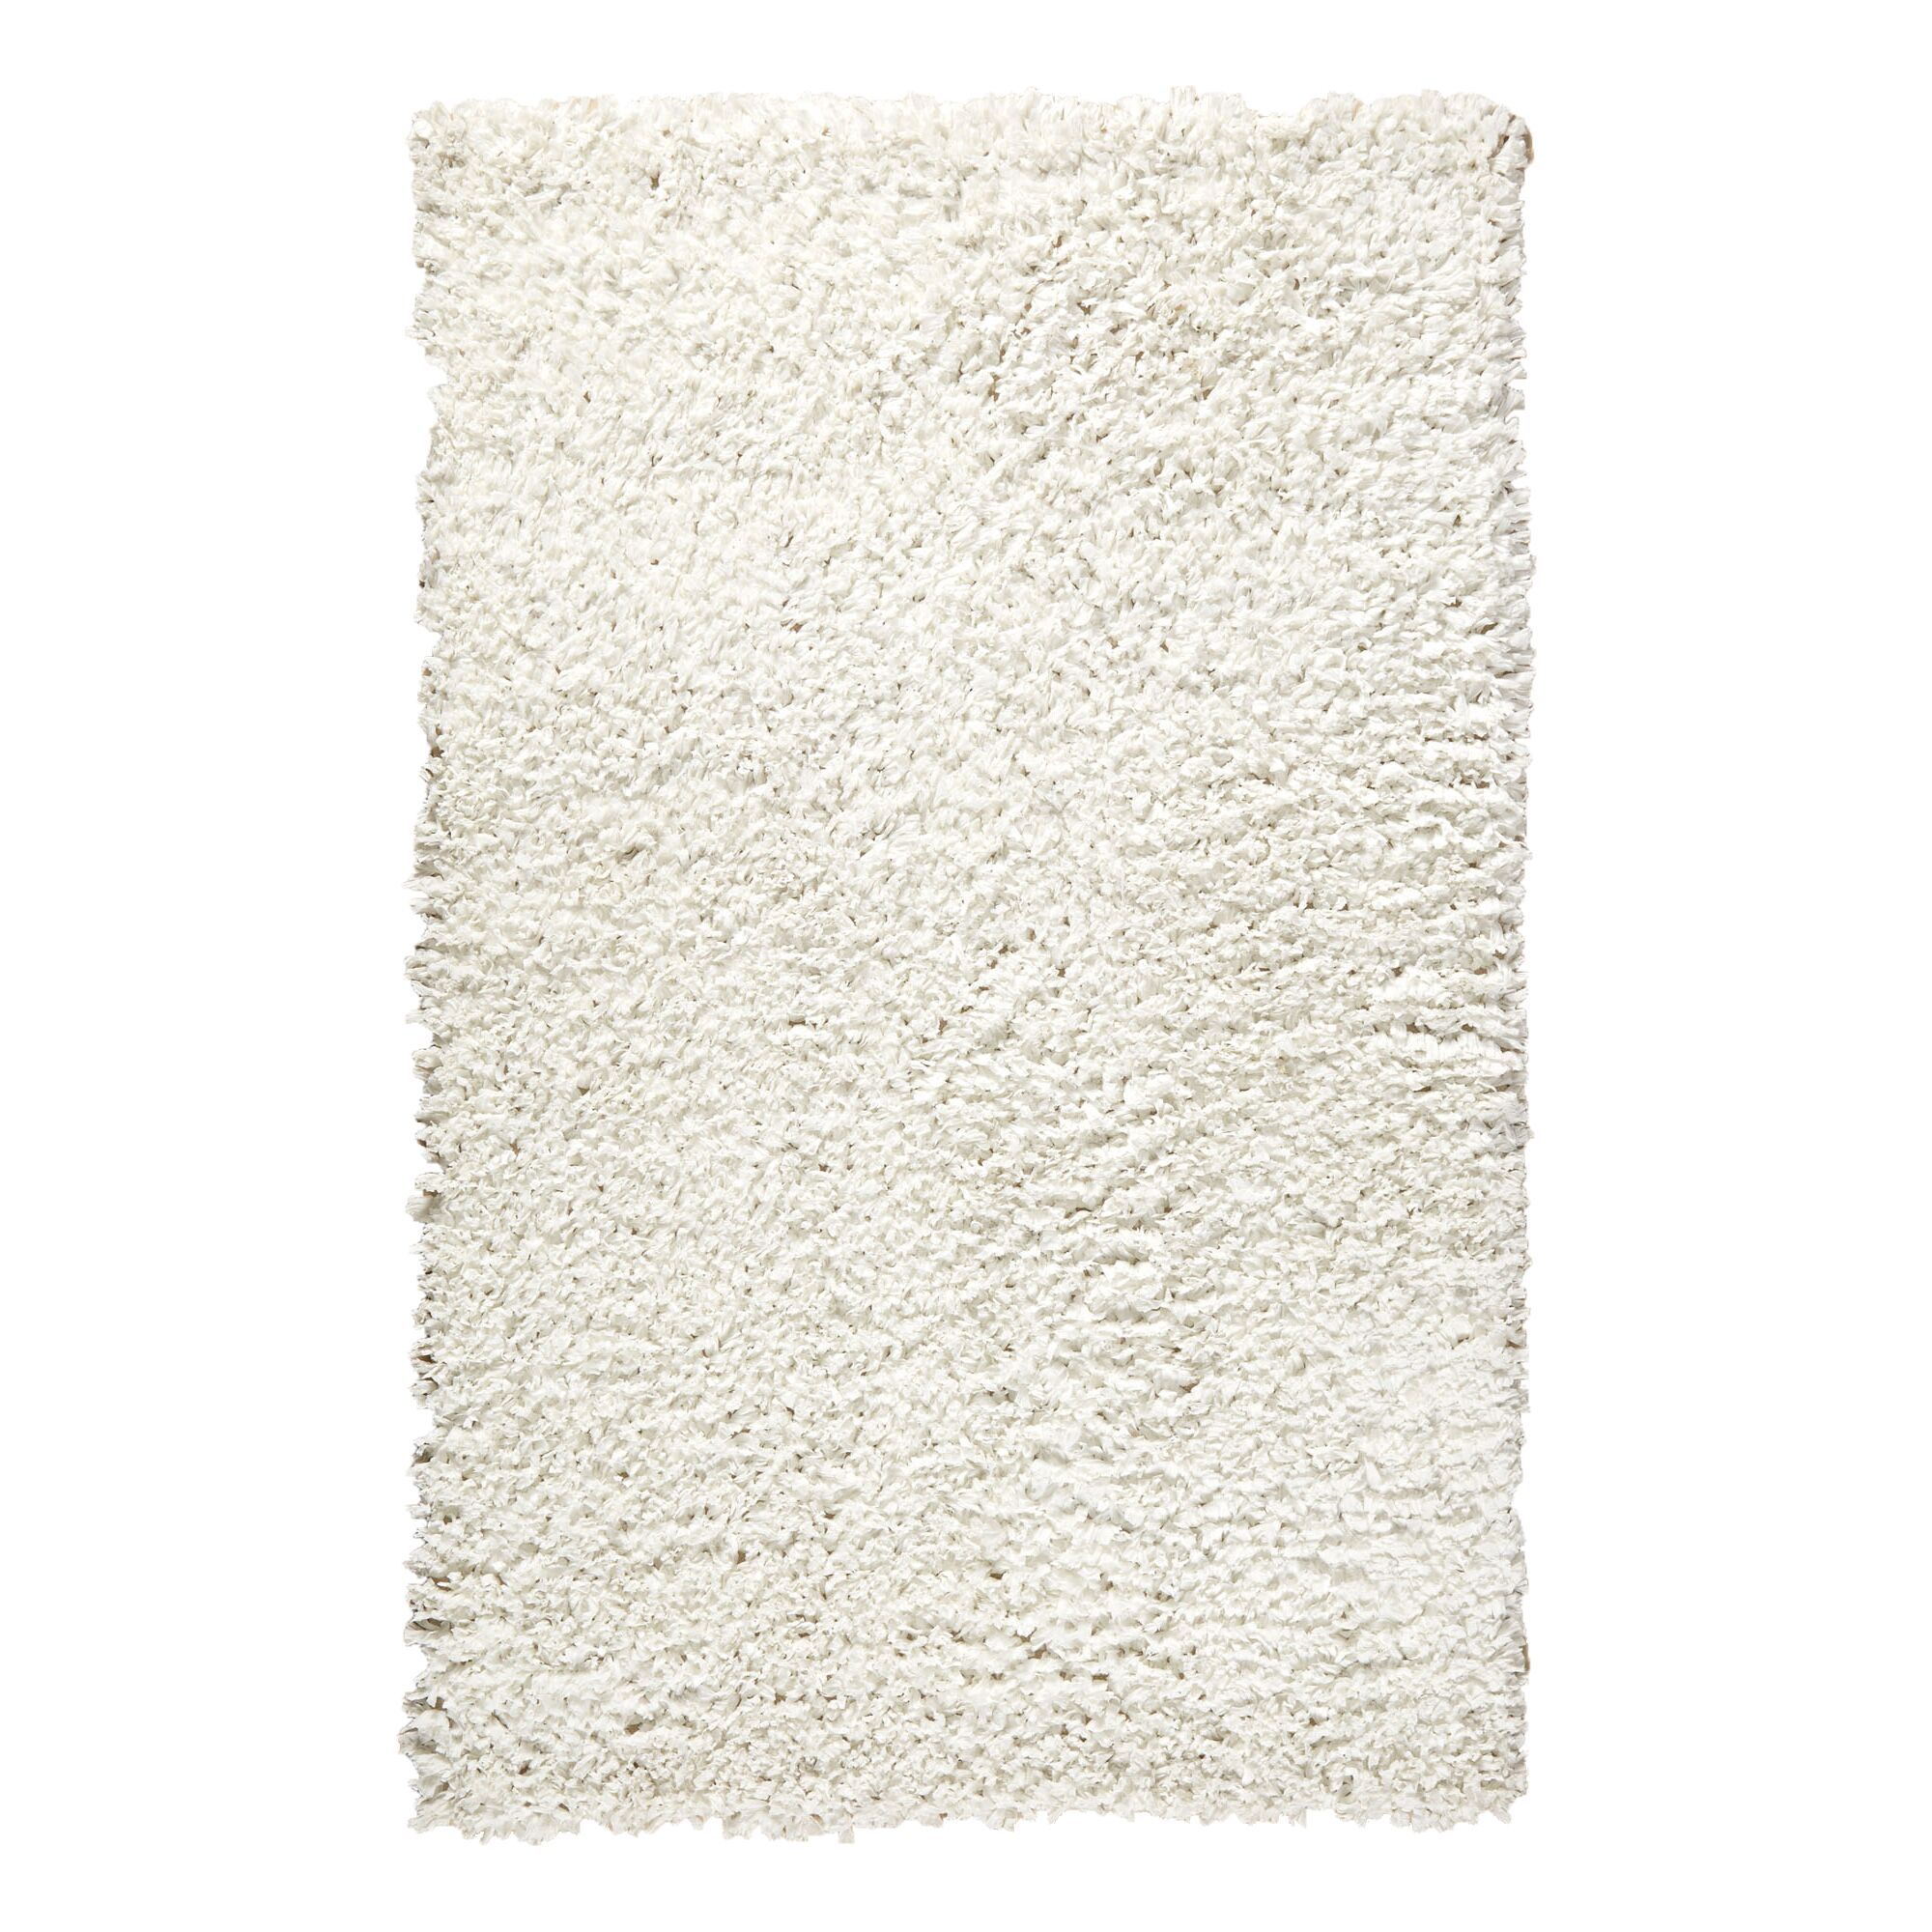 Shag Hand-Tufted Cream Area Rug Rug Size: 3' x 5'